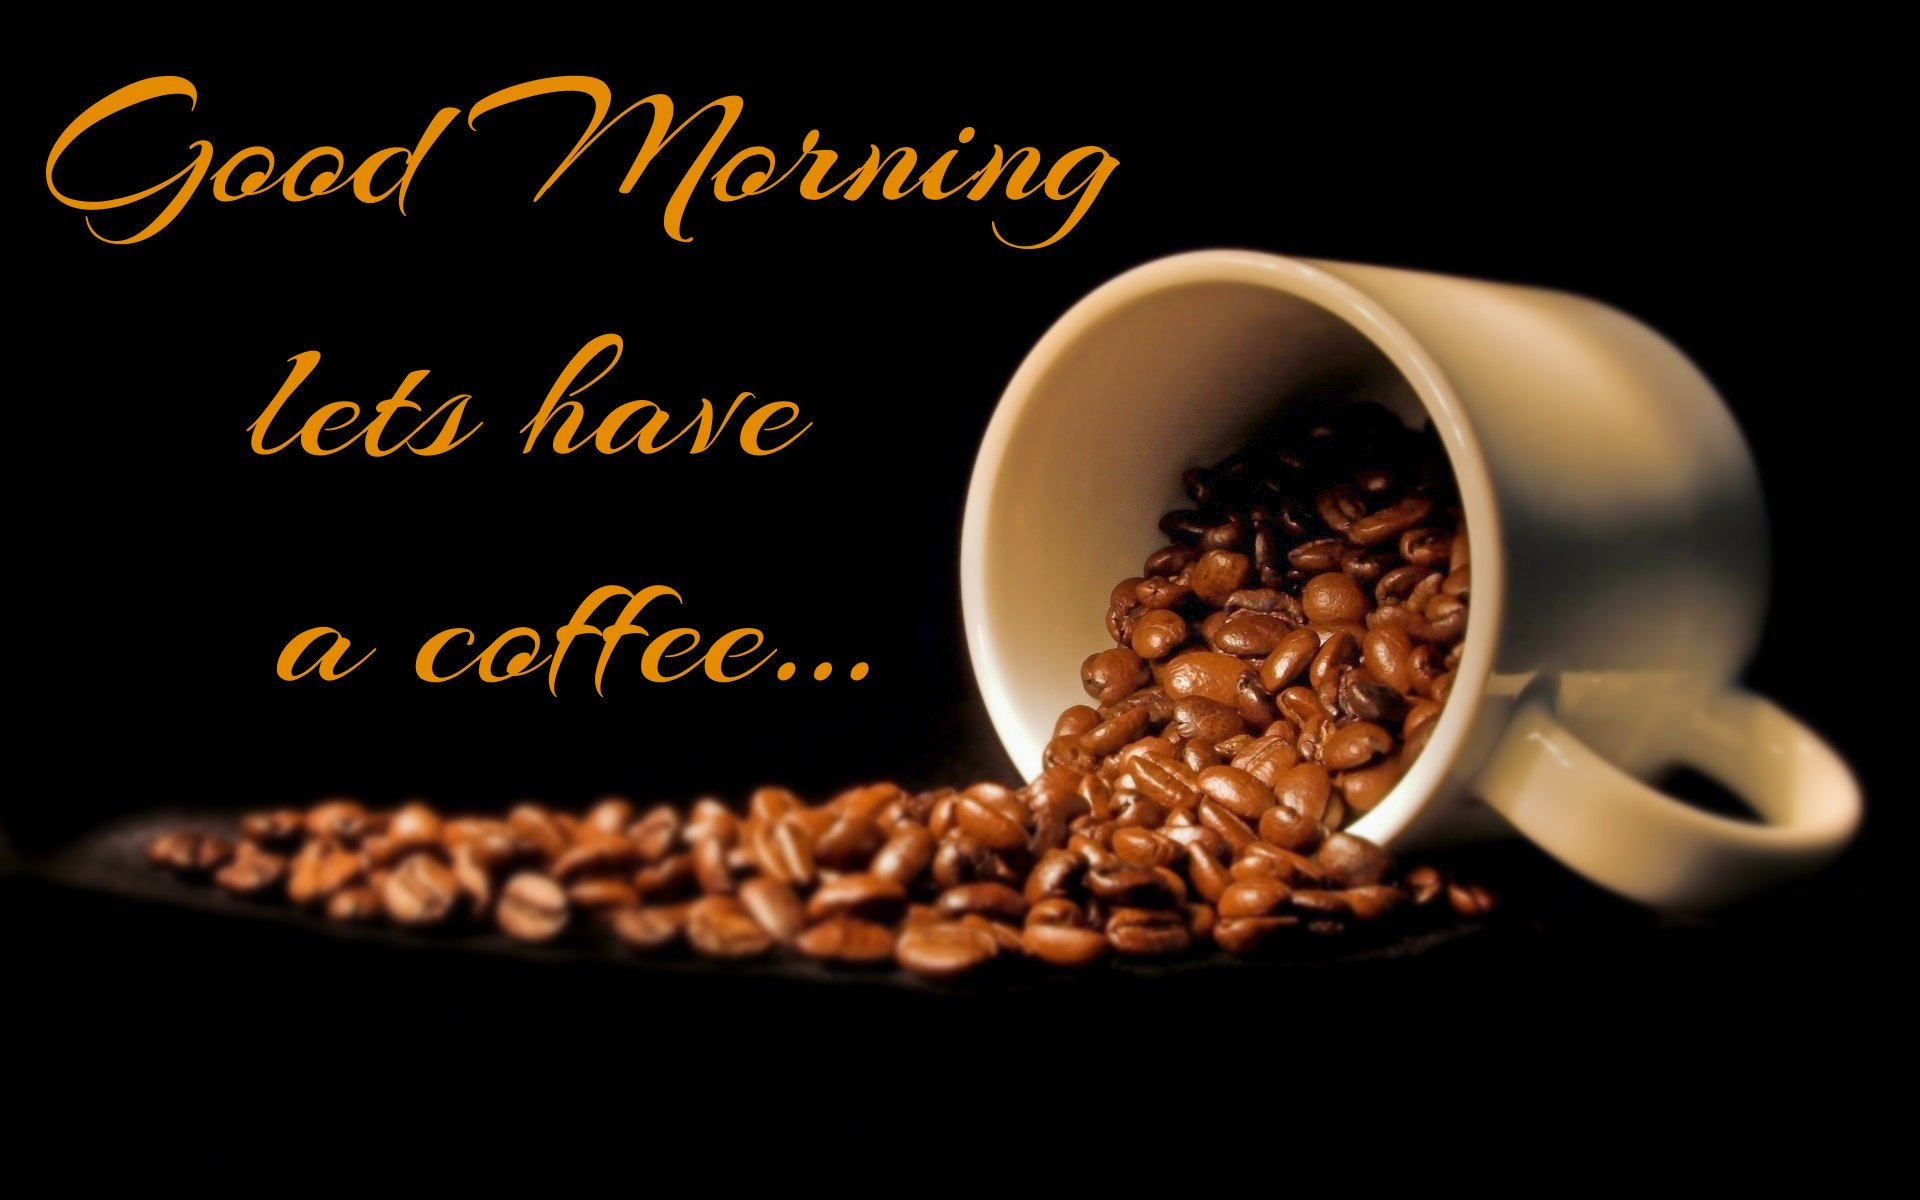 hd download good morning with coffee wallpaper